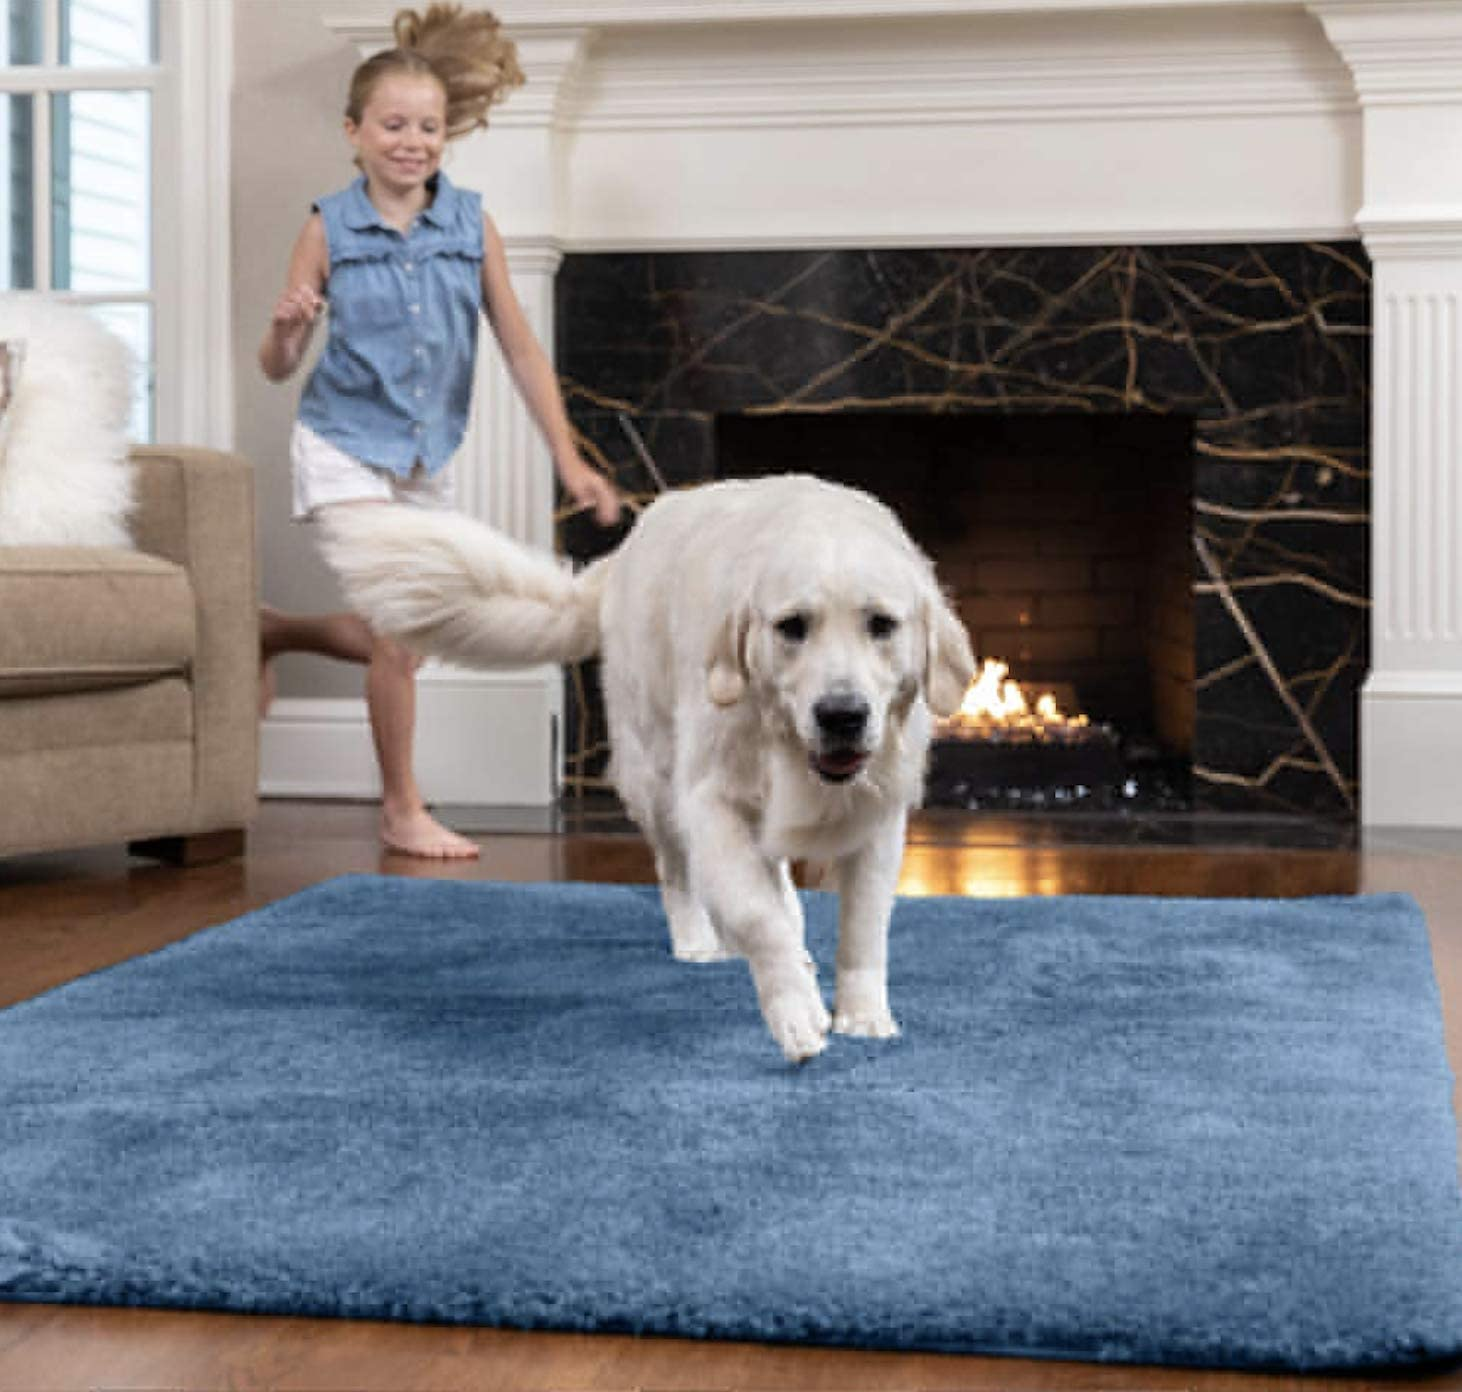 GORILLA GRIP Original Faux-Chinchilla Area Rug, 5x7 FT, Many Colors, Soft Cozy High Pile Washable Kids Carpet, Rugs for Floor, Luxury Shag Carpets for Home, Nursery, Bed and Living Room, Blue